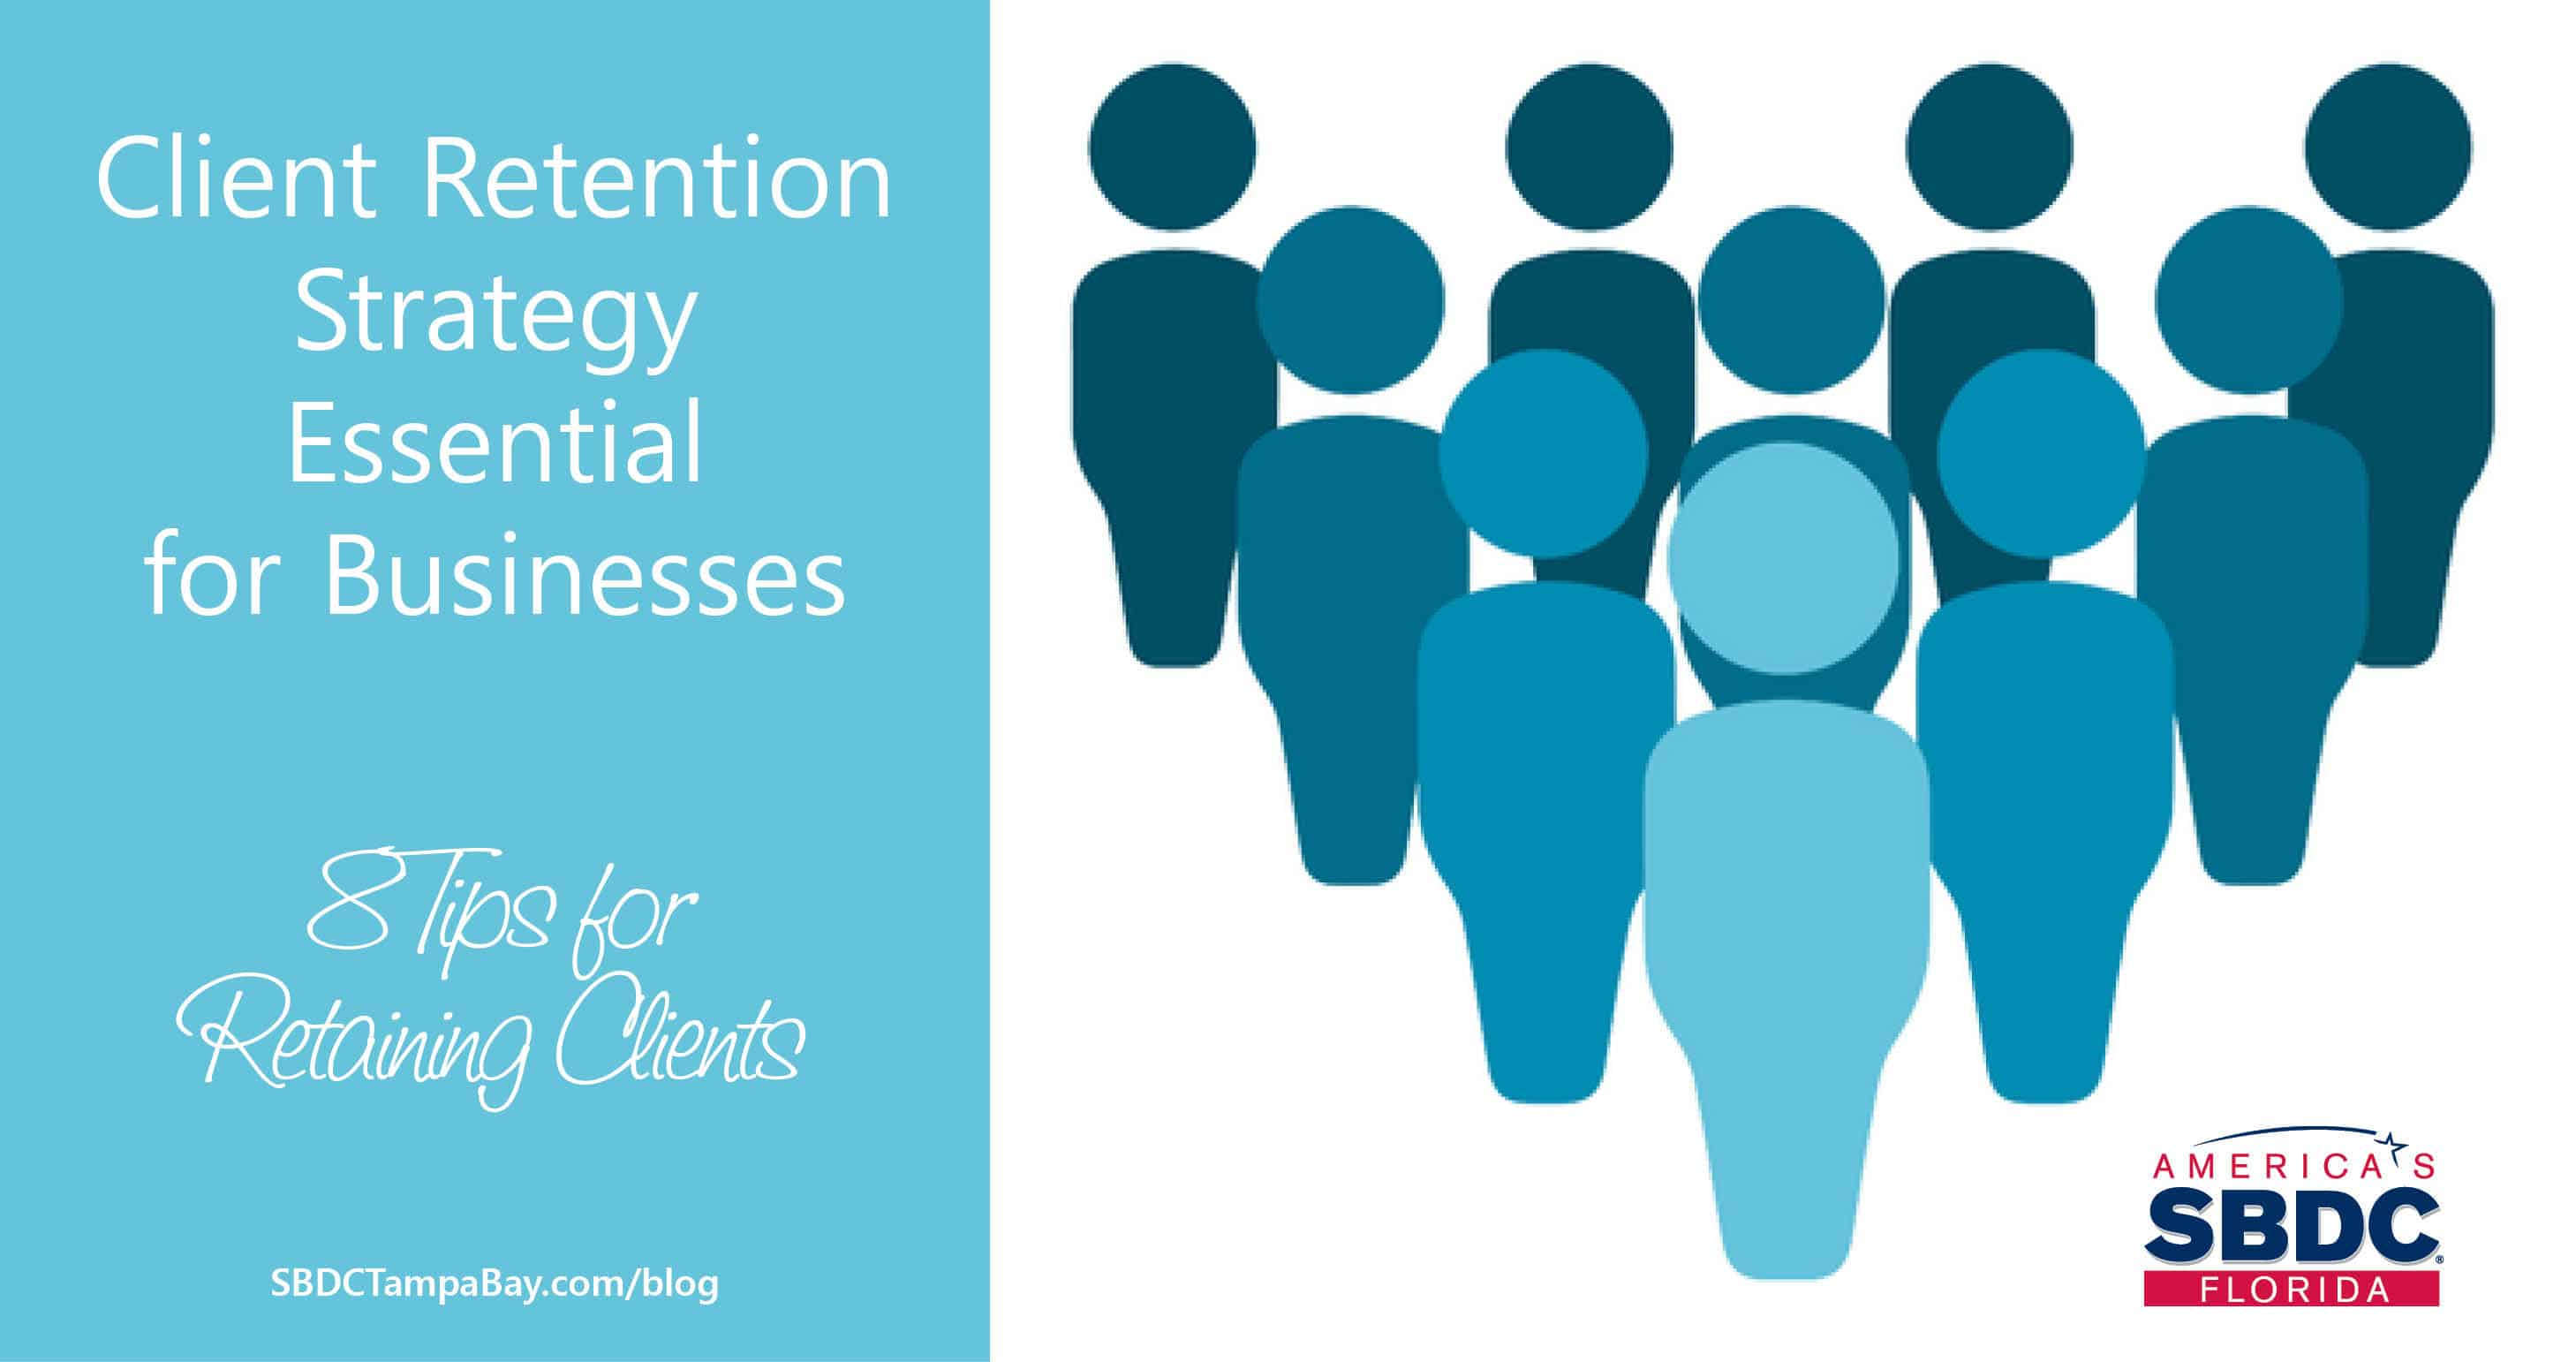 Client Retention Strategy Essential for Businesses